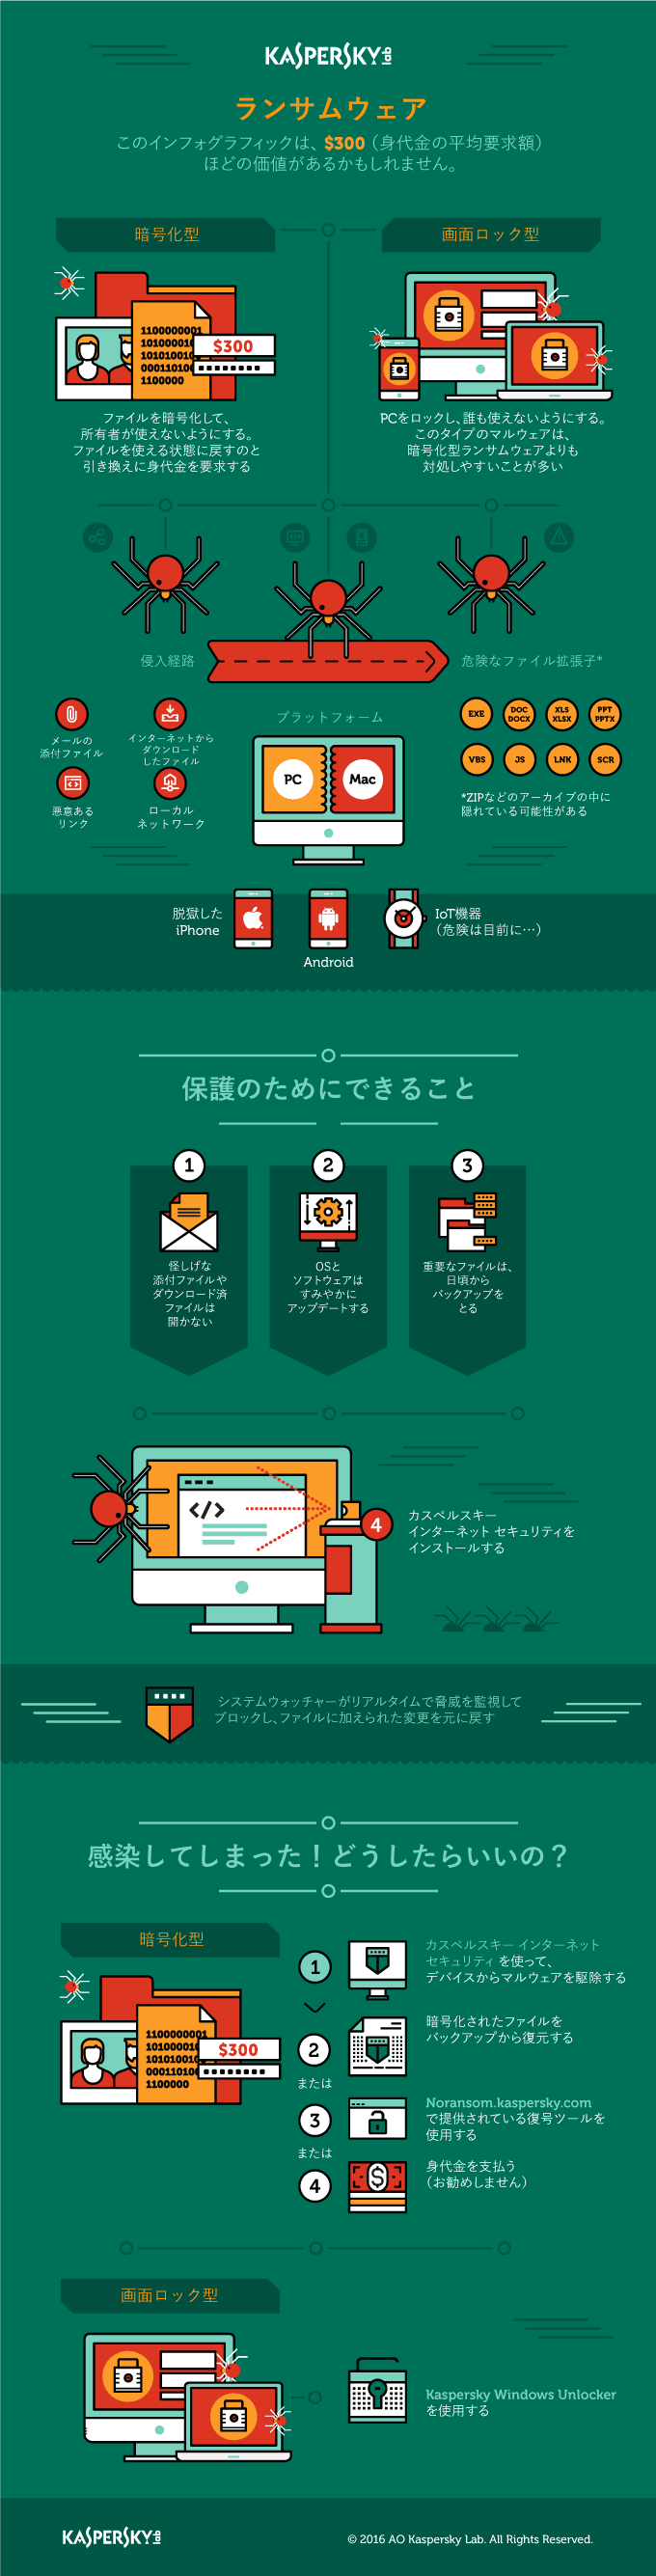 Infographic about ransomware